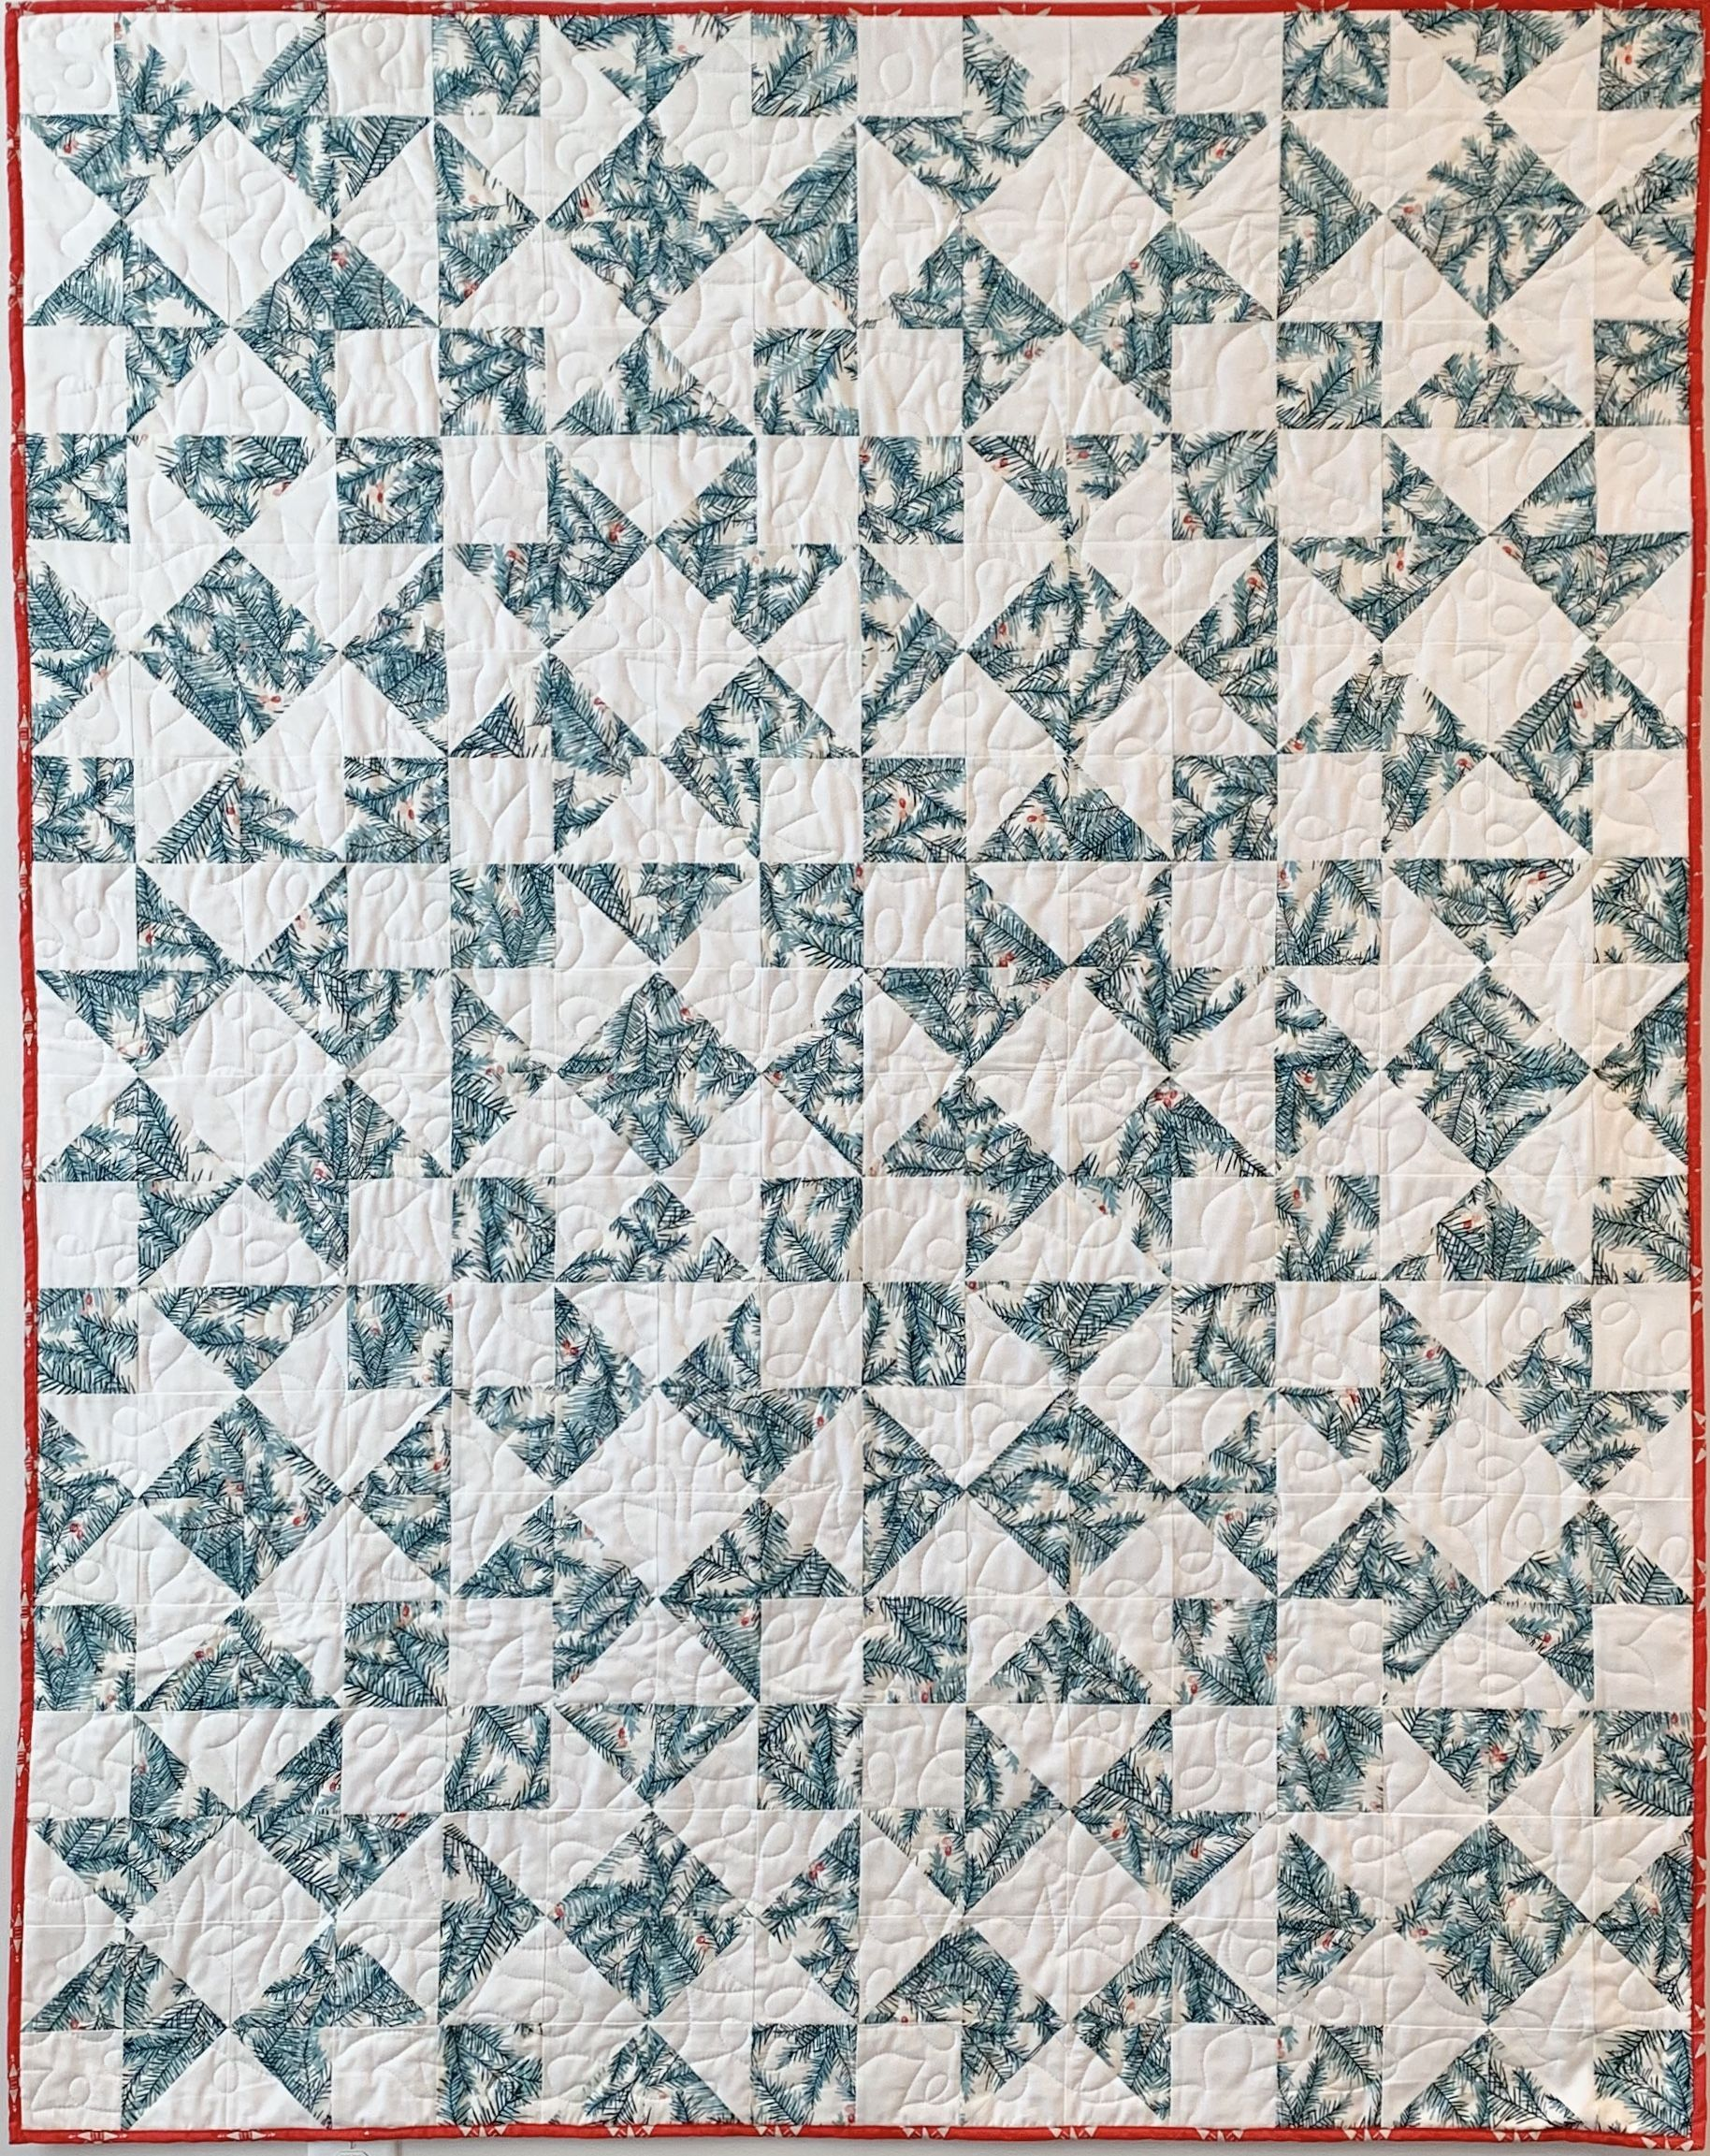 Helios Quilt Pattern In 2020 With Images Quilts Quilt Patterns Pattern